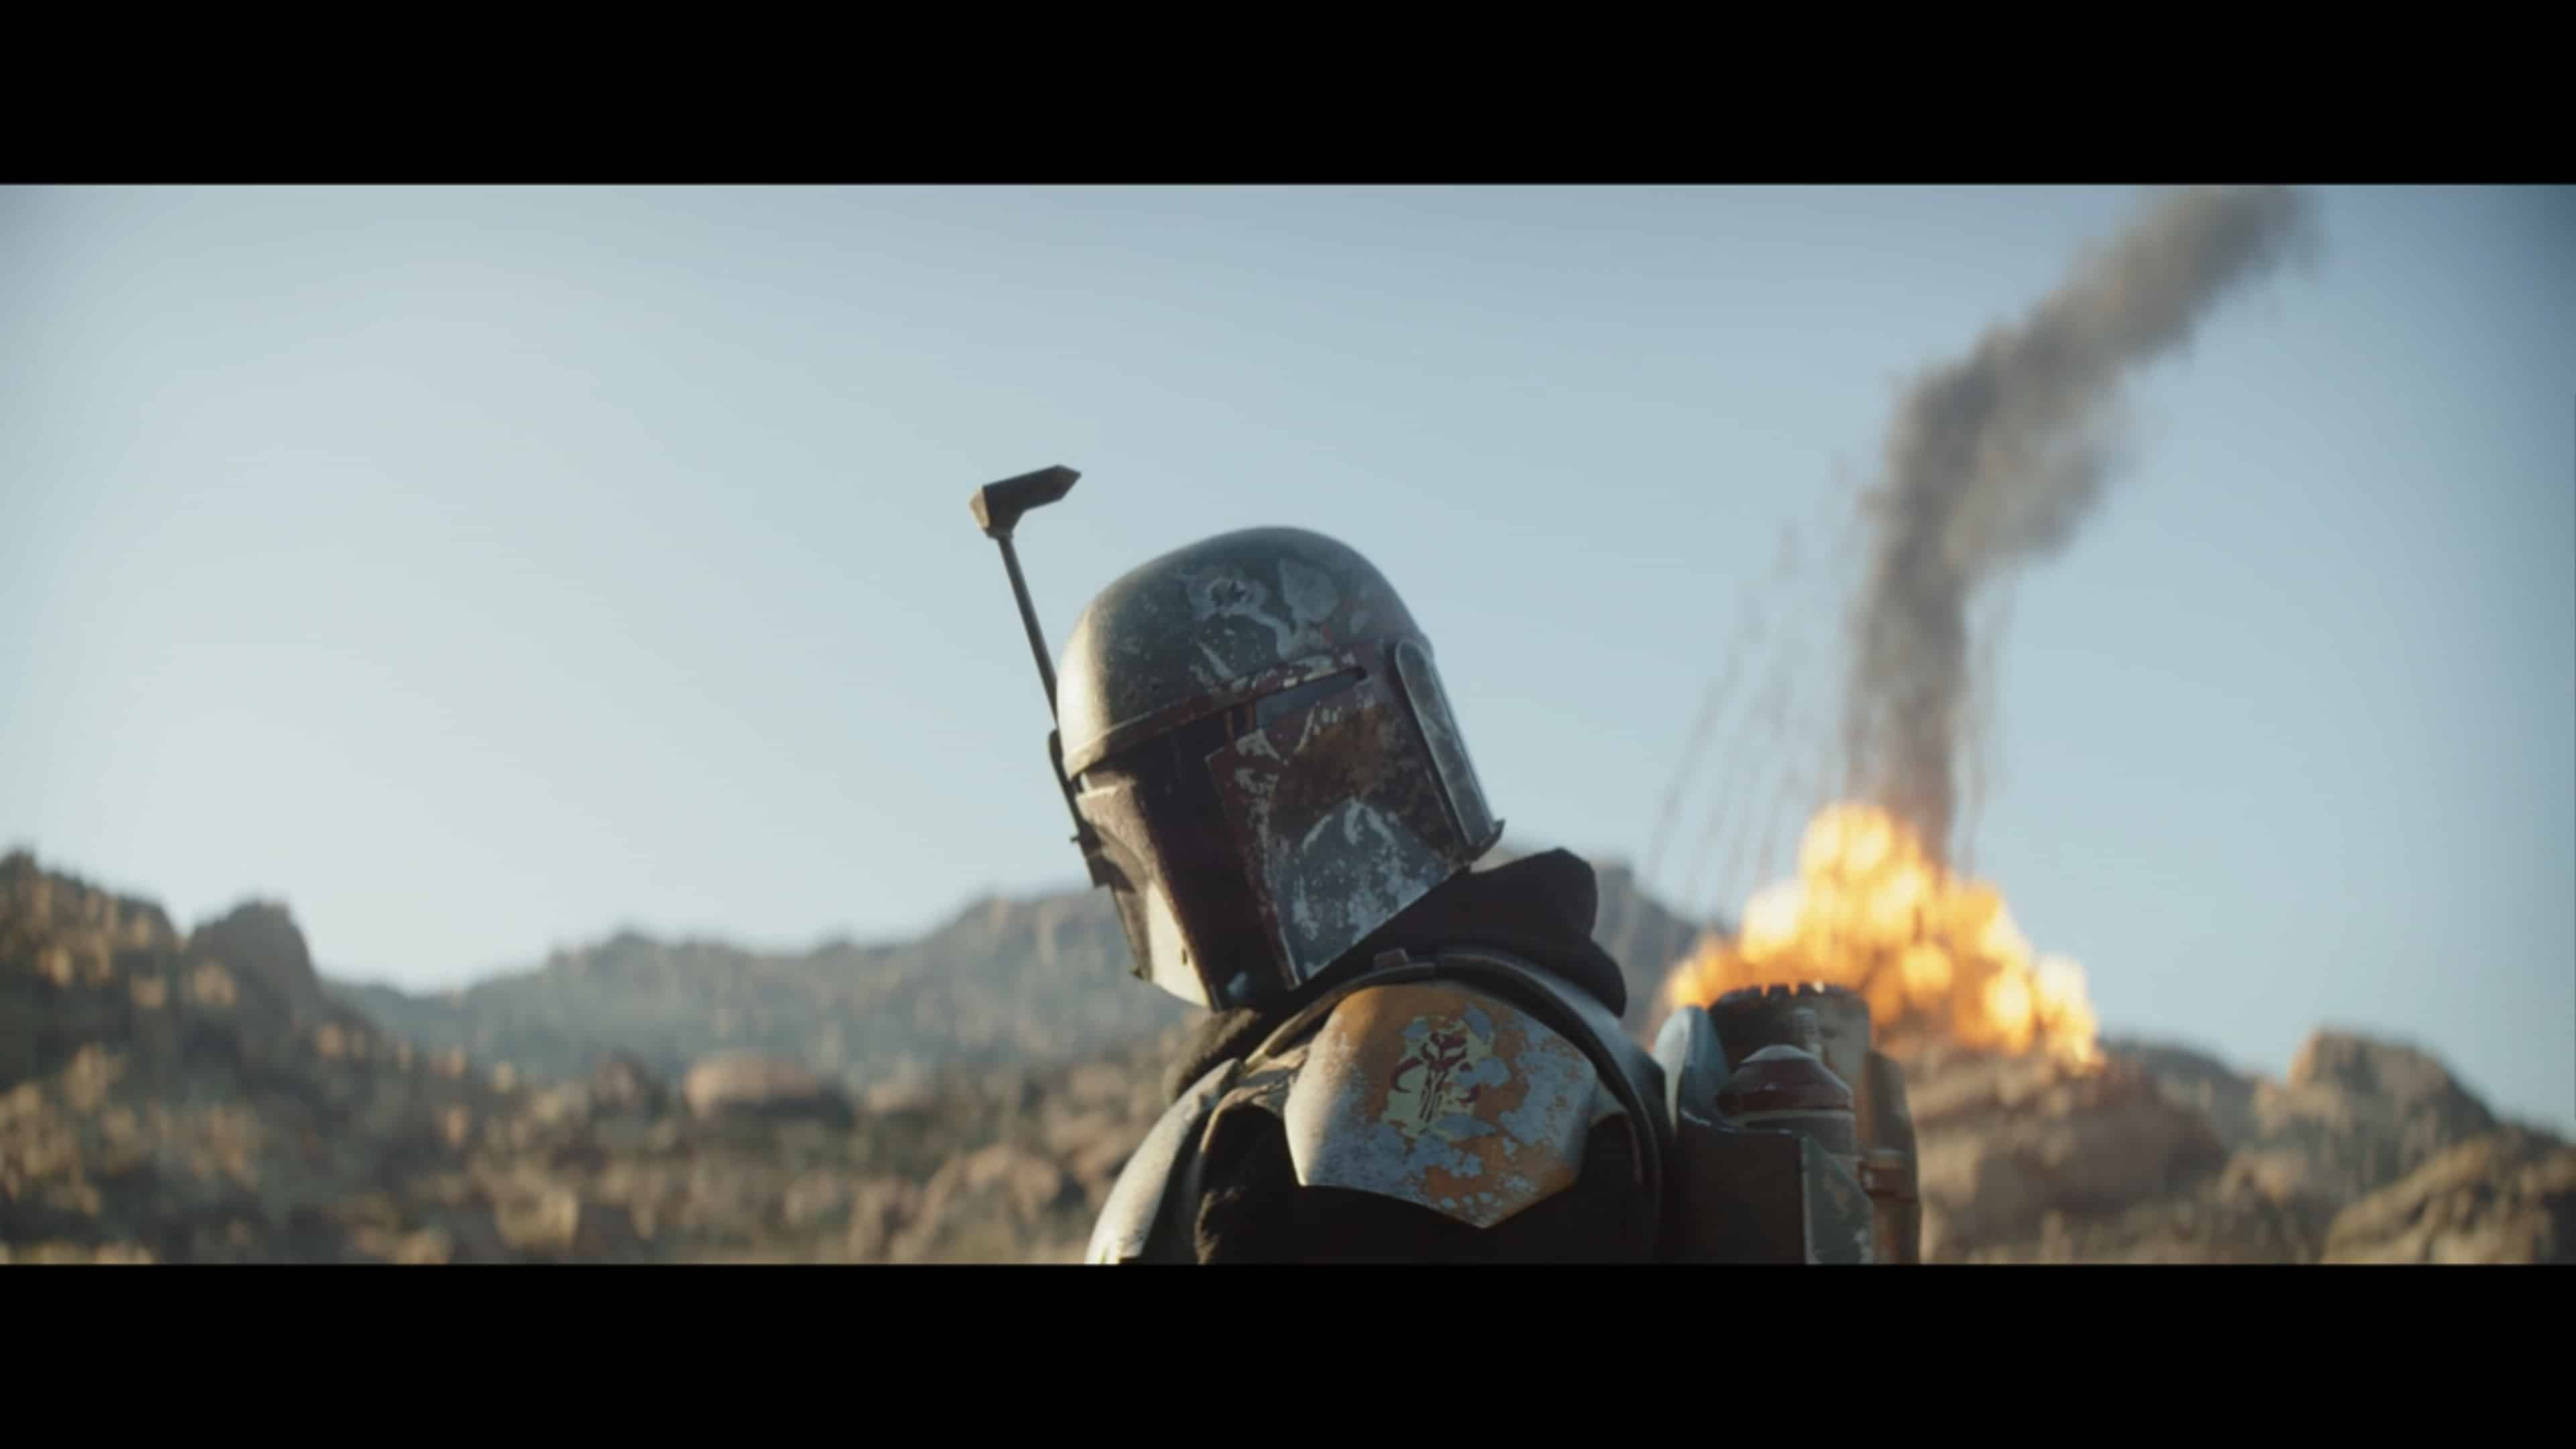 Boba Fett with an explosion behind him